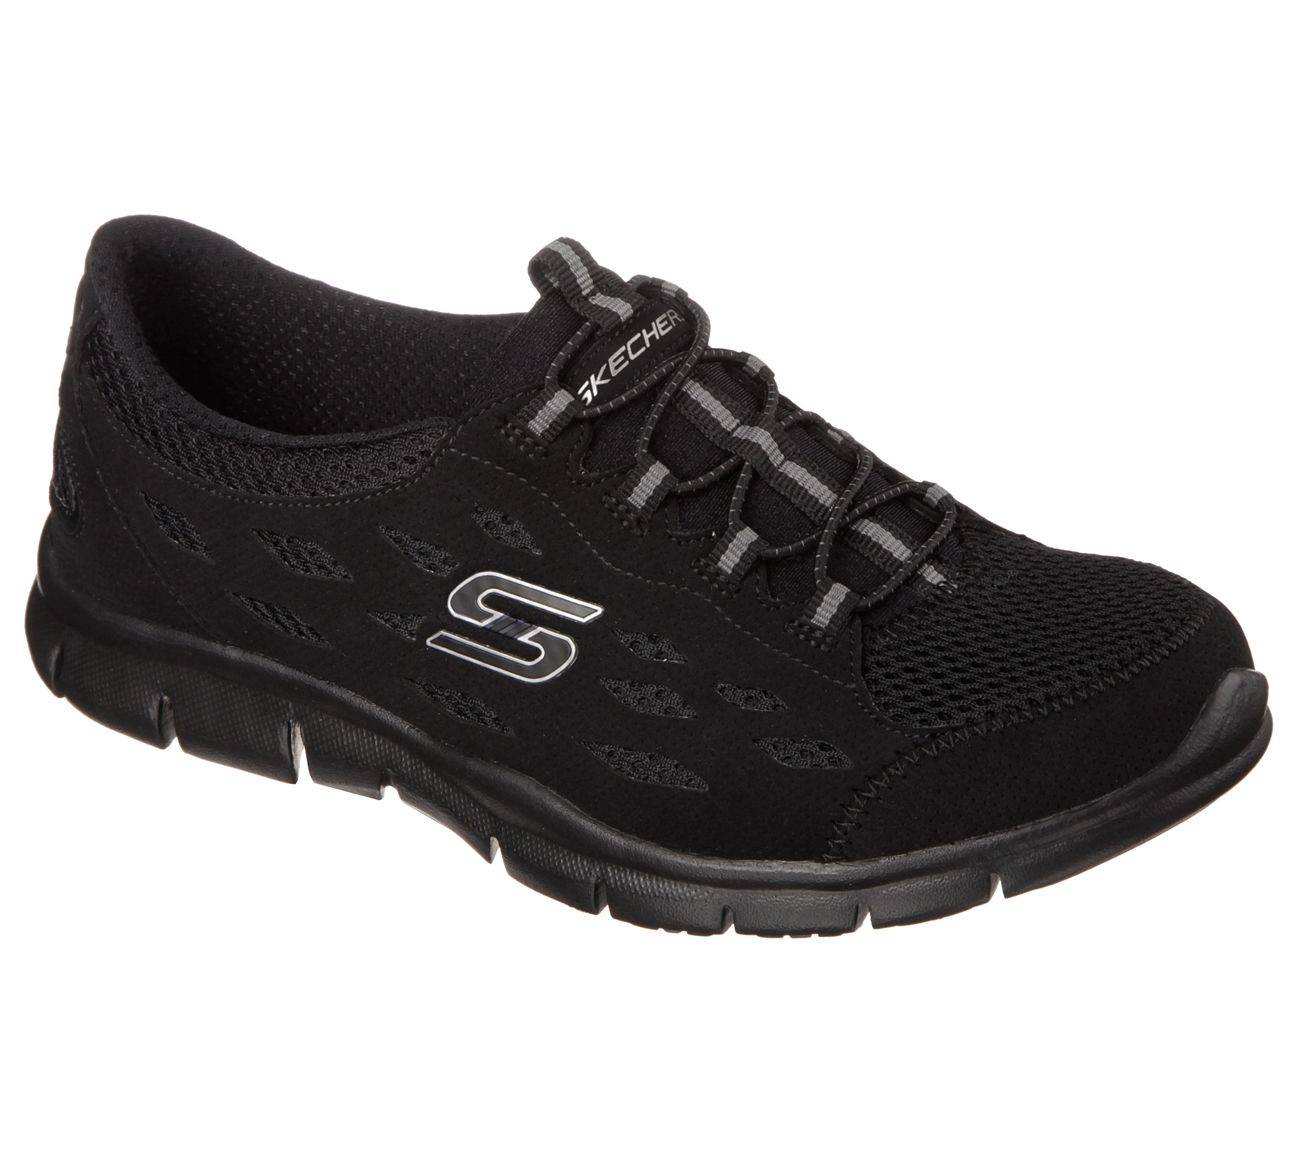 places that sell skechers